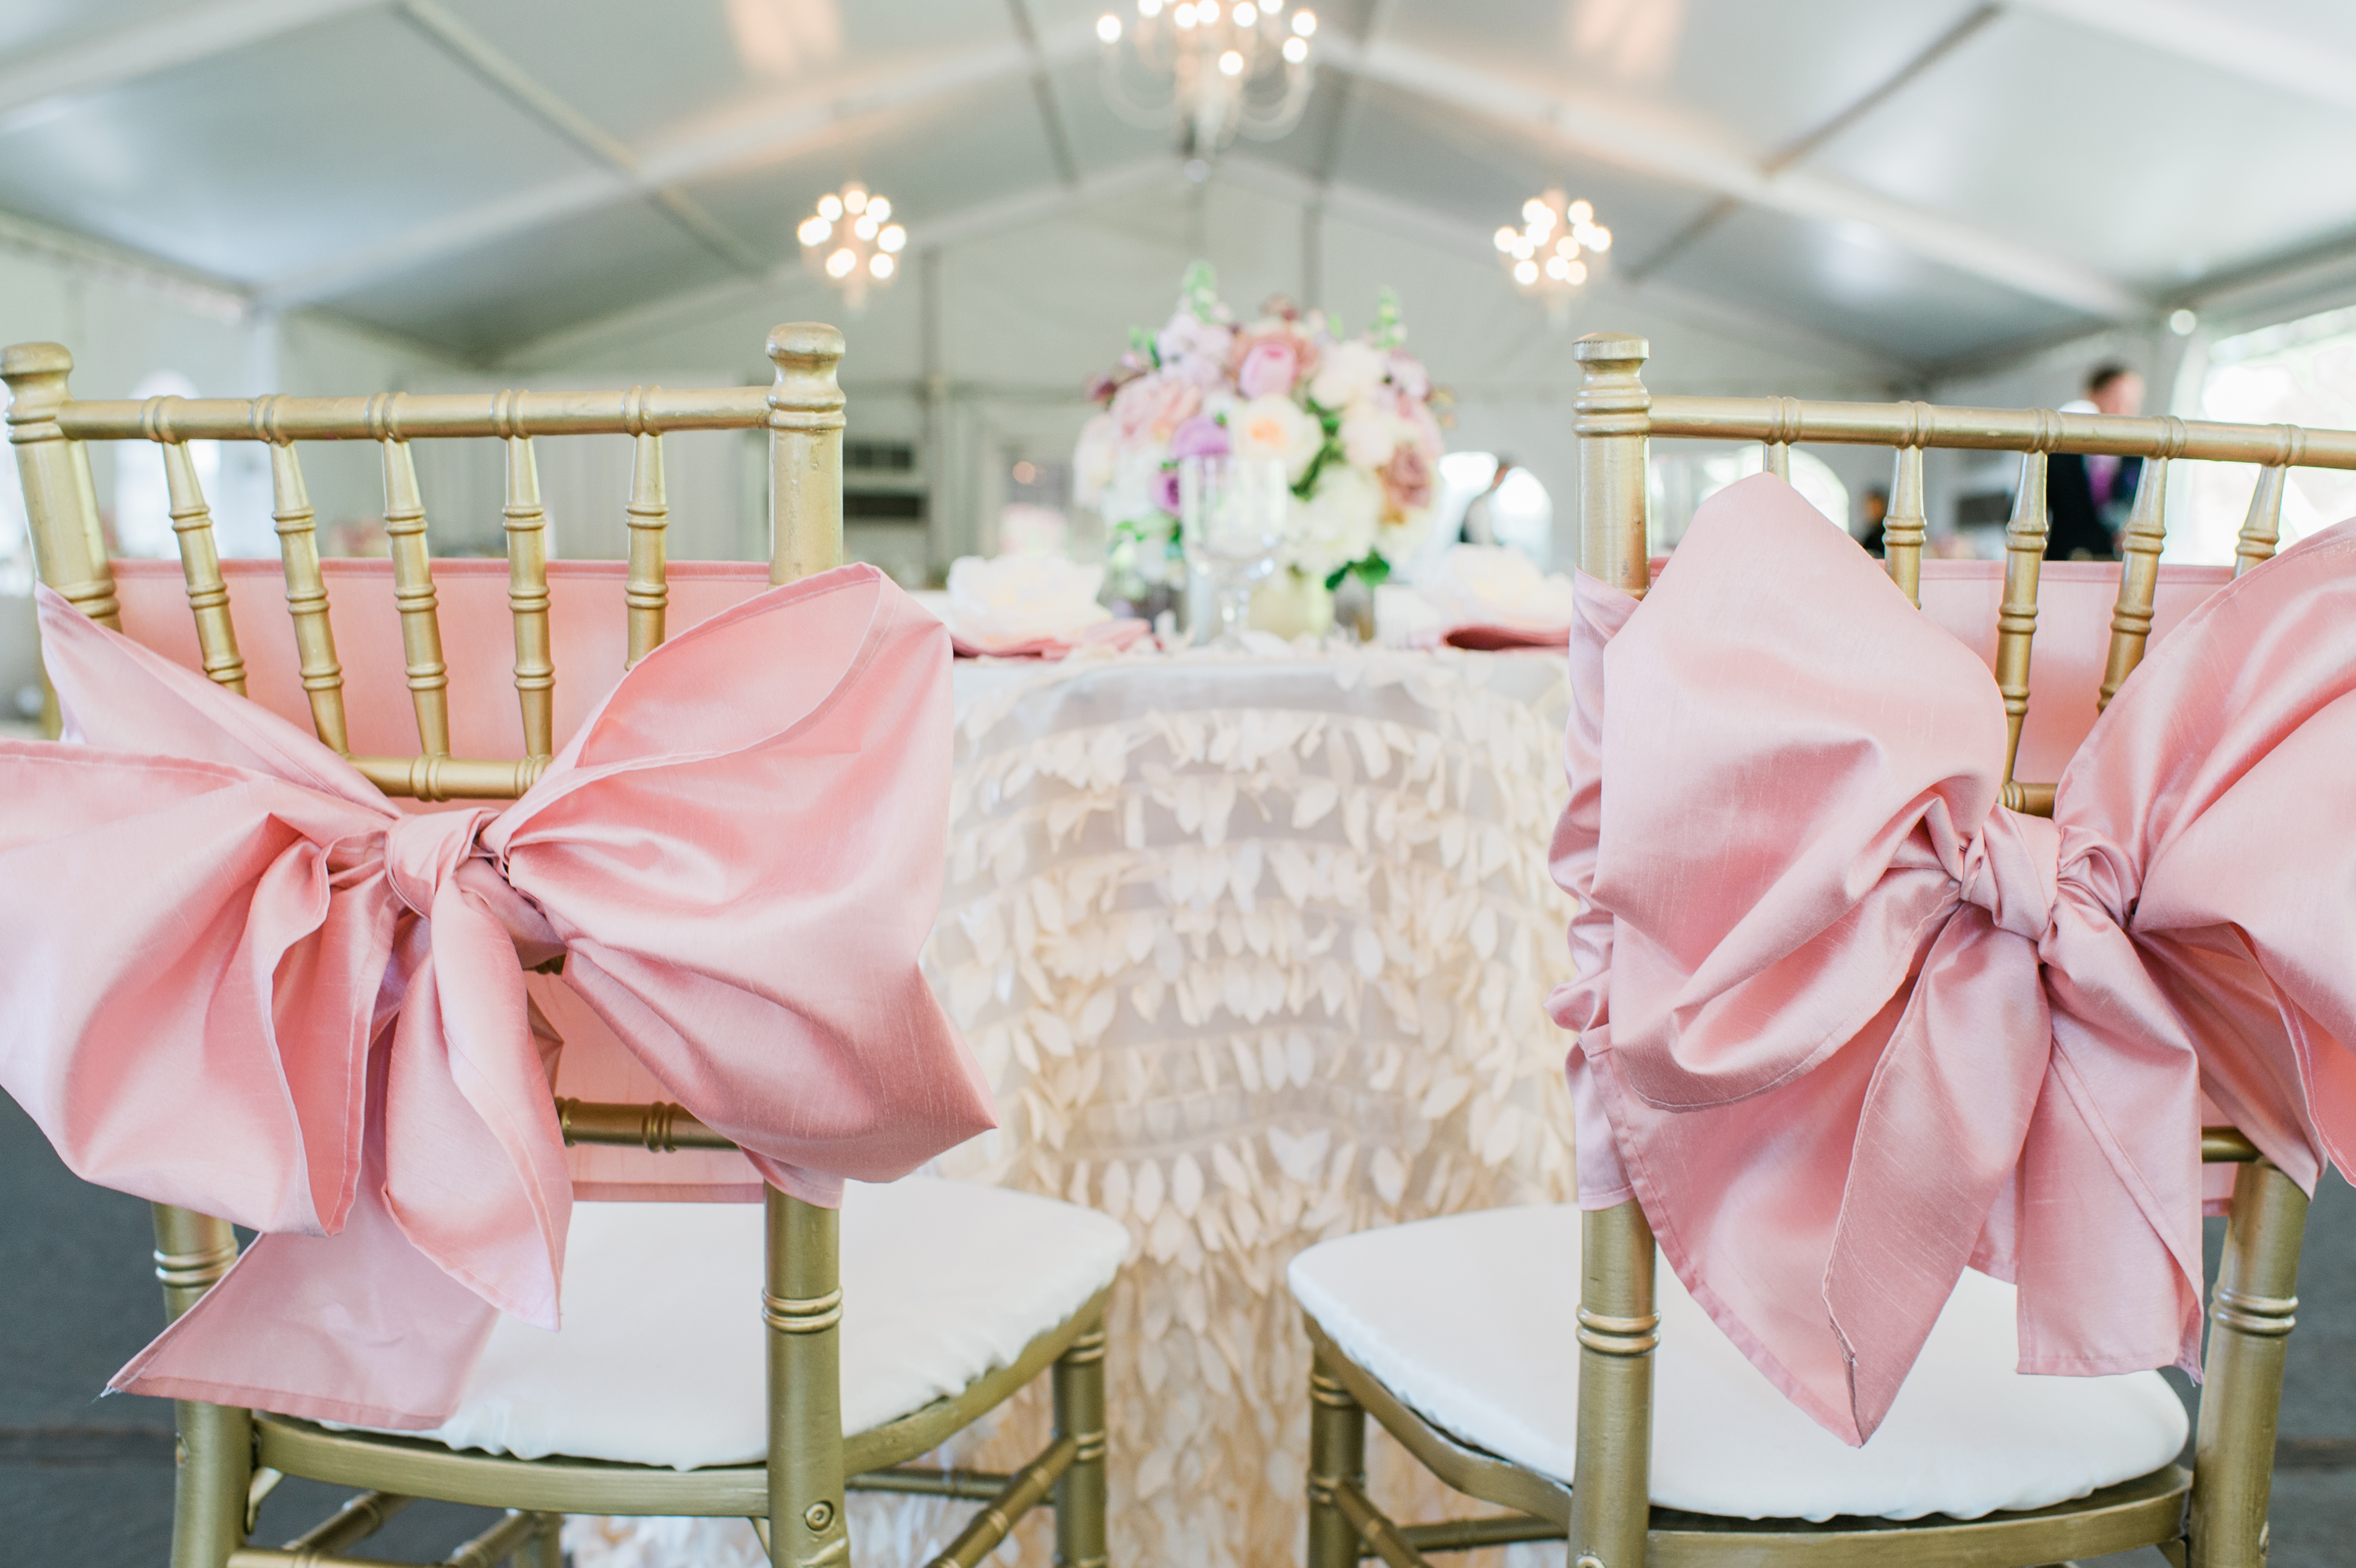 Maryland Brunch Wedding Reception at Elkridge Furnace Inn, DC Wedding Planner Bright Occasions, Photography by Brittany DeFrehn